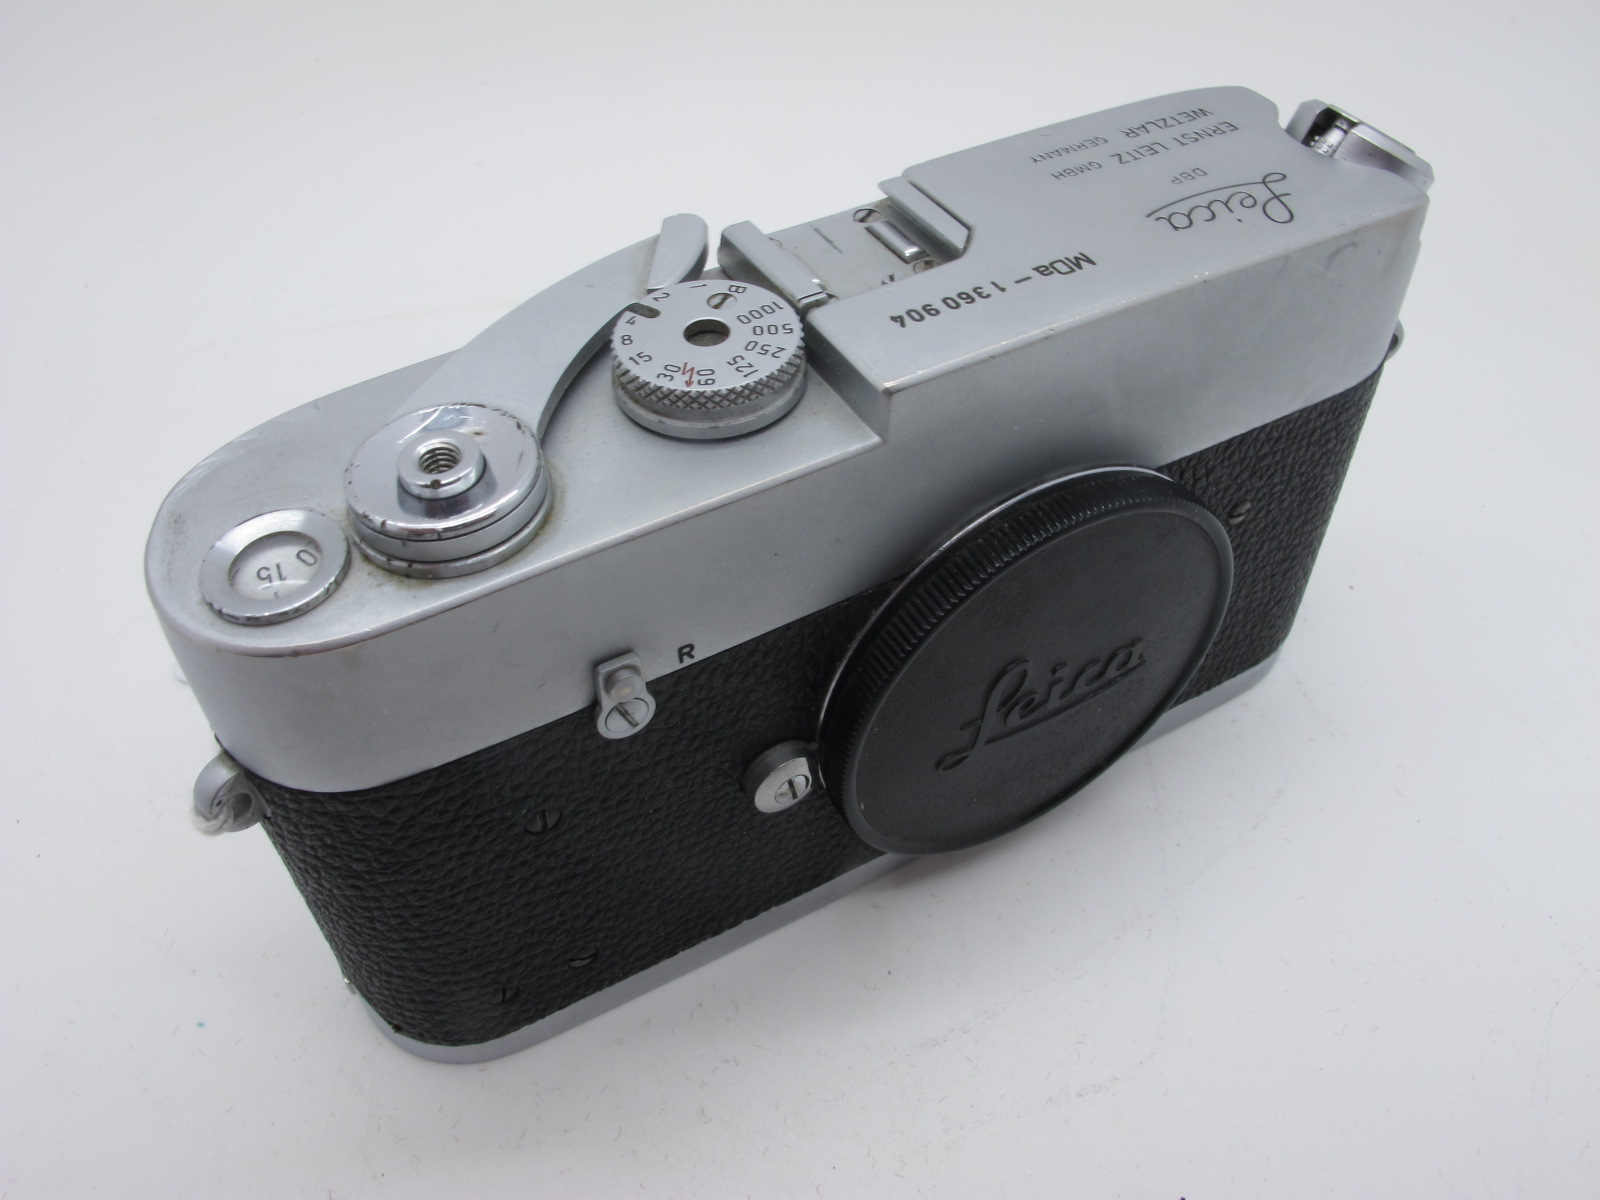 Leica MDa - 1360904 Body Only. - Image 7 of 7